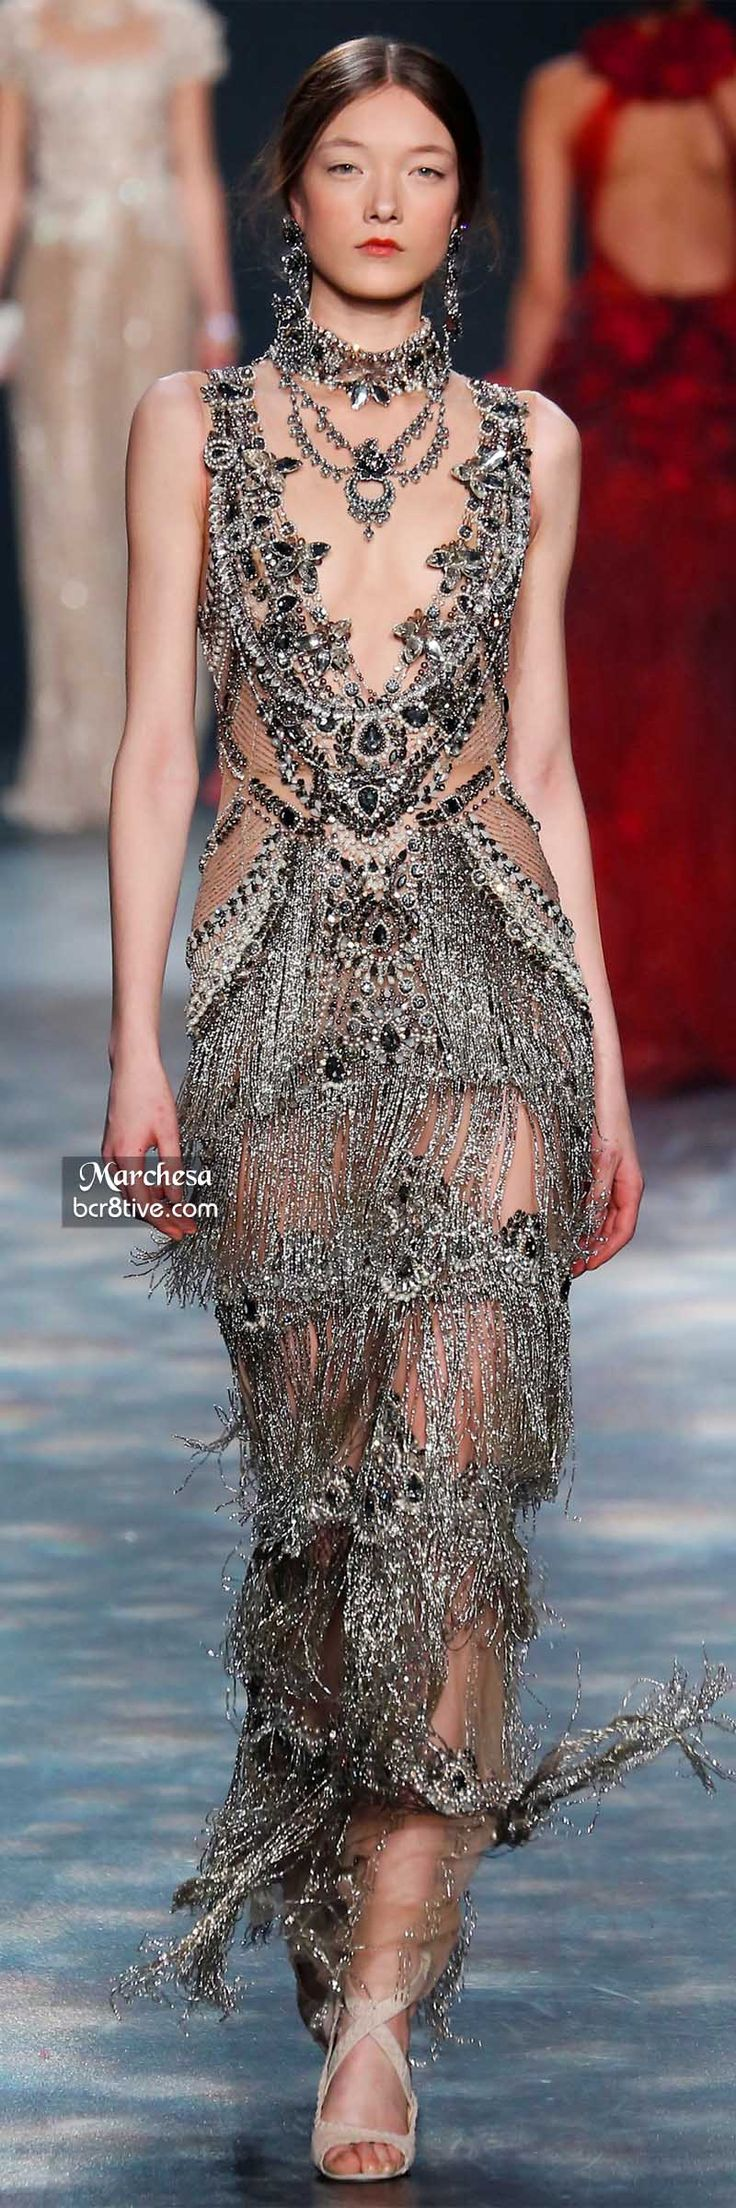 Marchesa designs are everything to me. They are filled with so much hard work and the amount of detail is incredible.